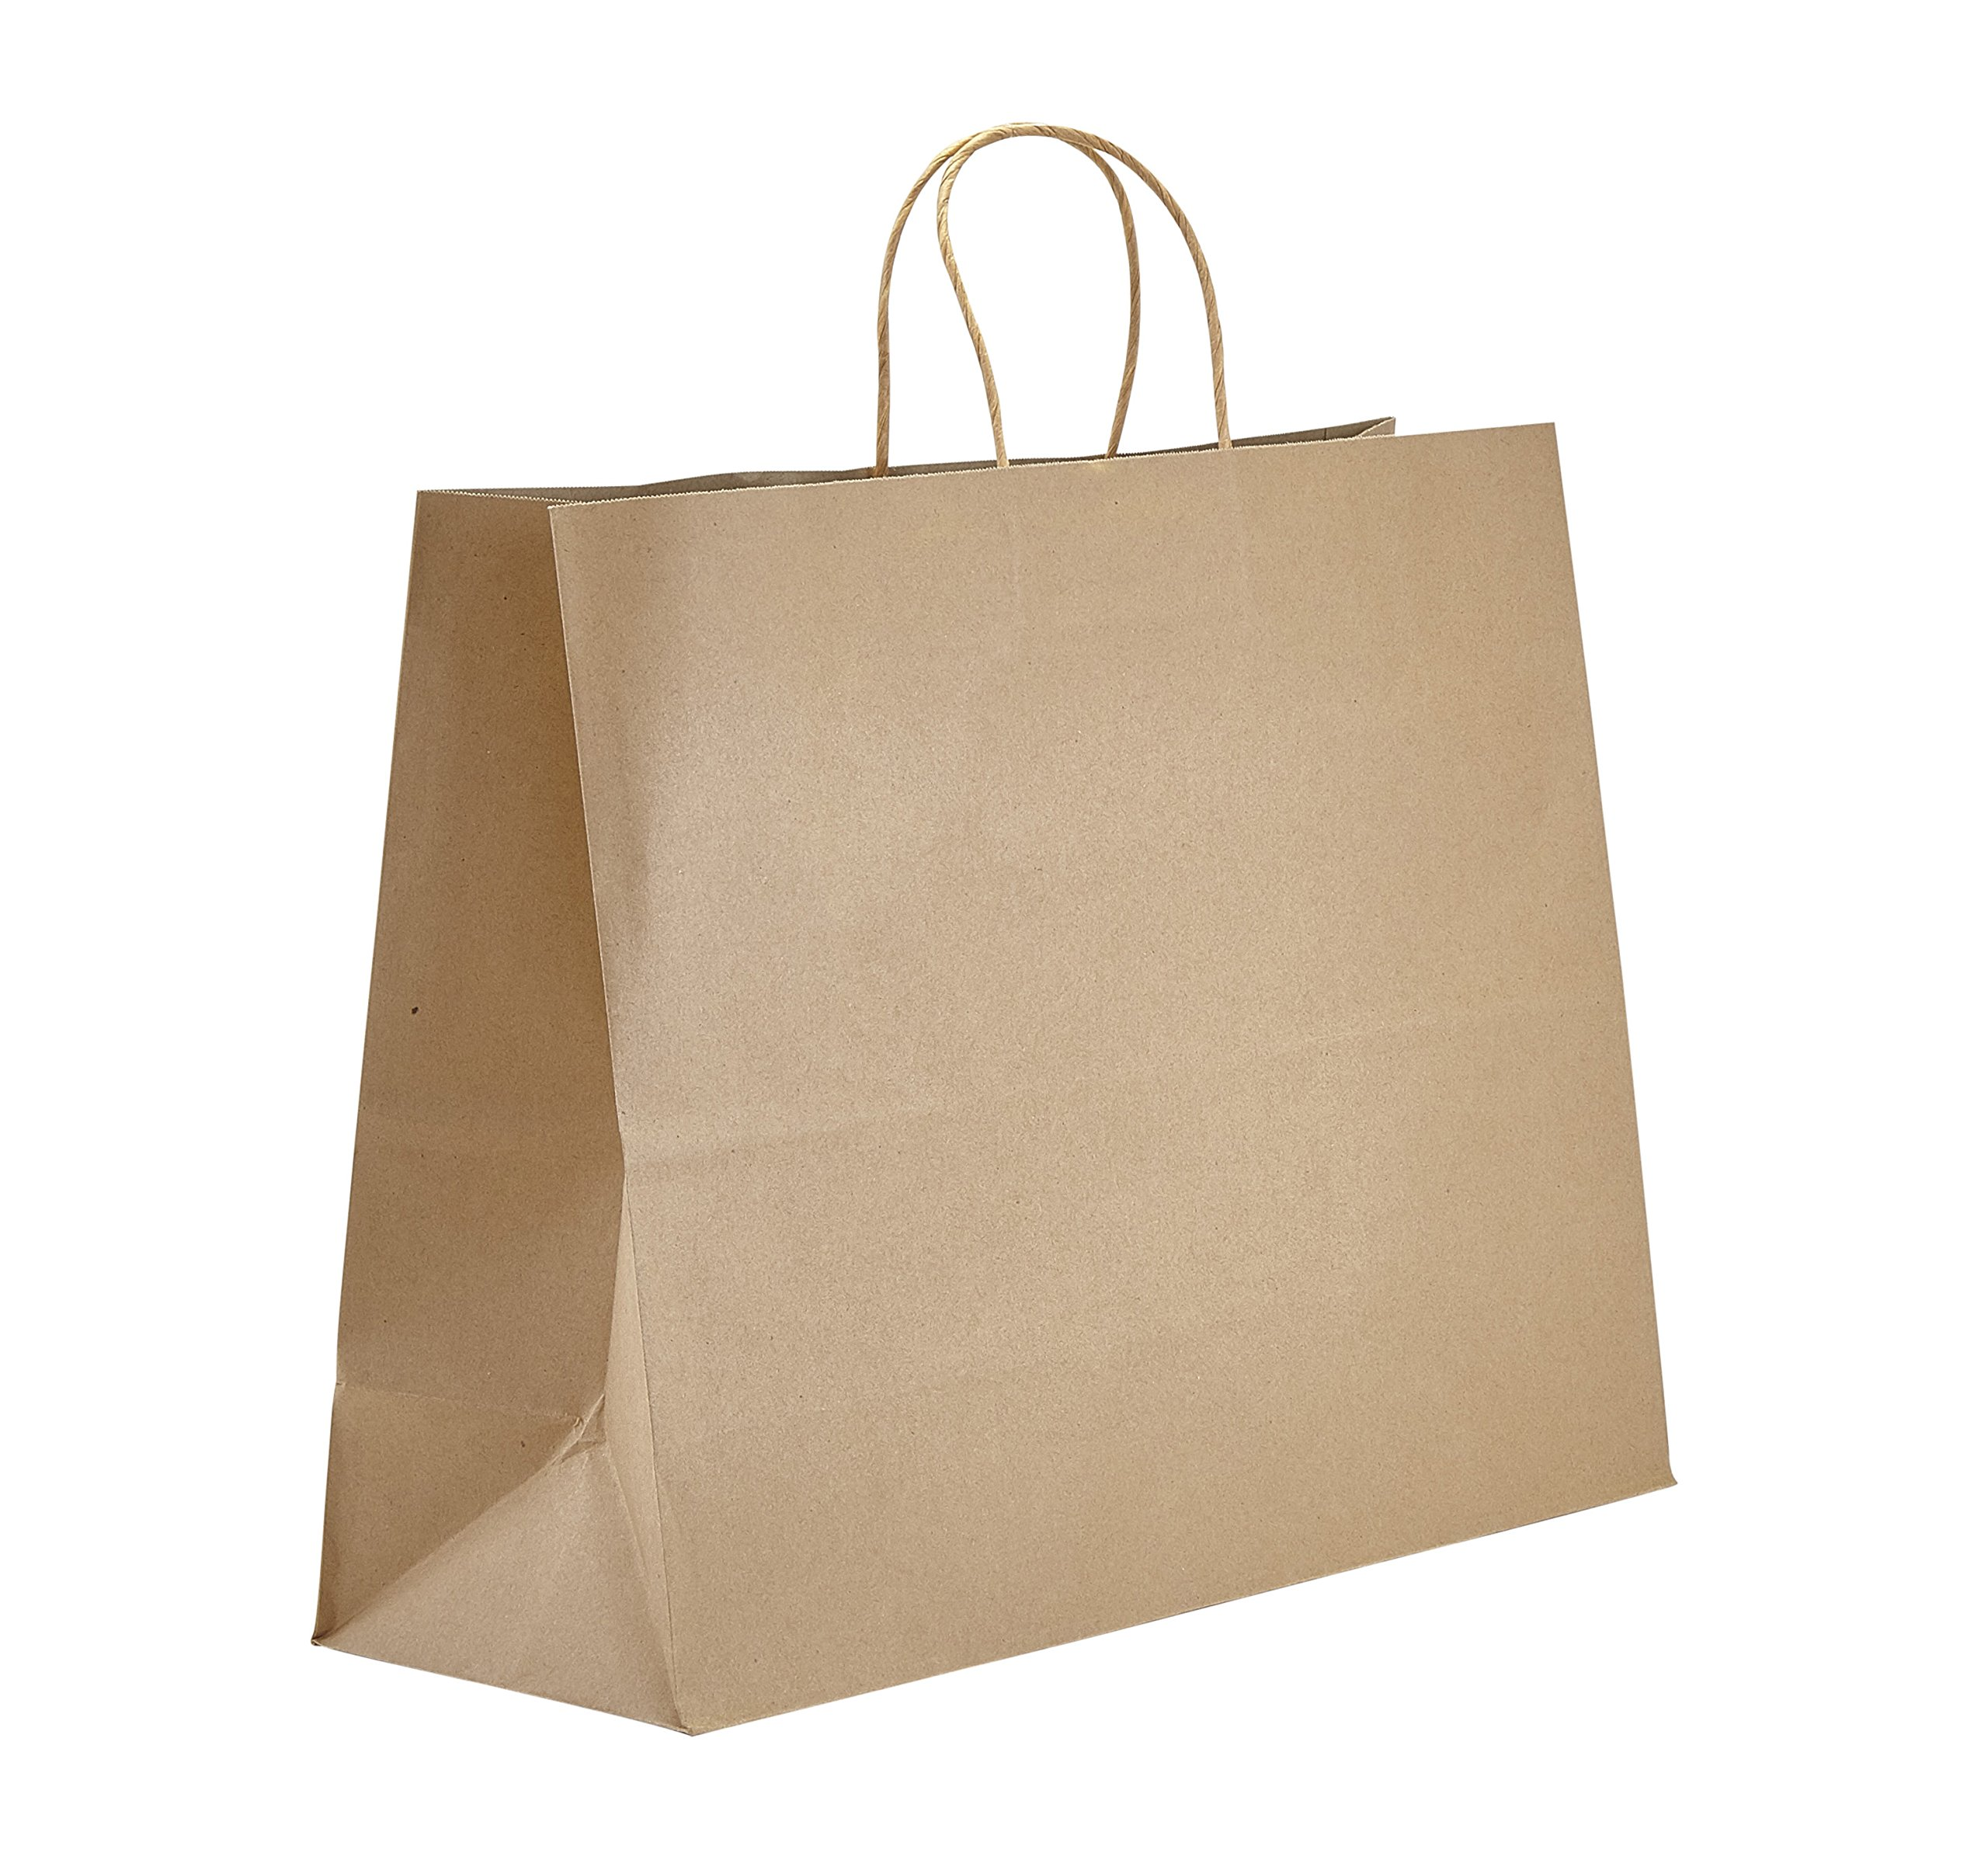 PTP - 16'' x 6'' x 12.5'' Natural Kraft Paper Gift Tote Bags - 250 Count| Perfect for Birthdays, Weddings, Holidays and All Occasions | White or Natural Colors | Multiple Sizes